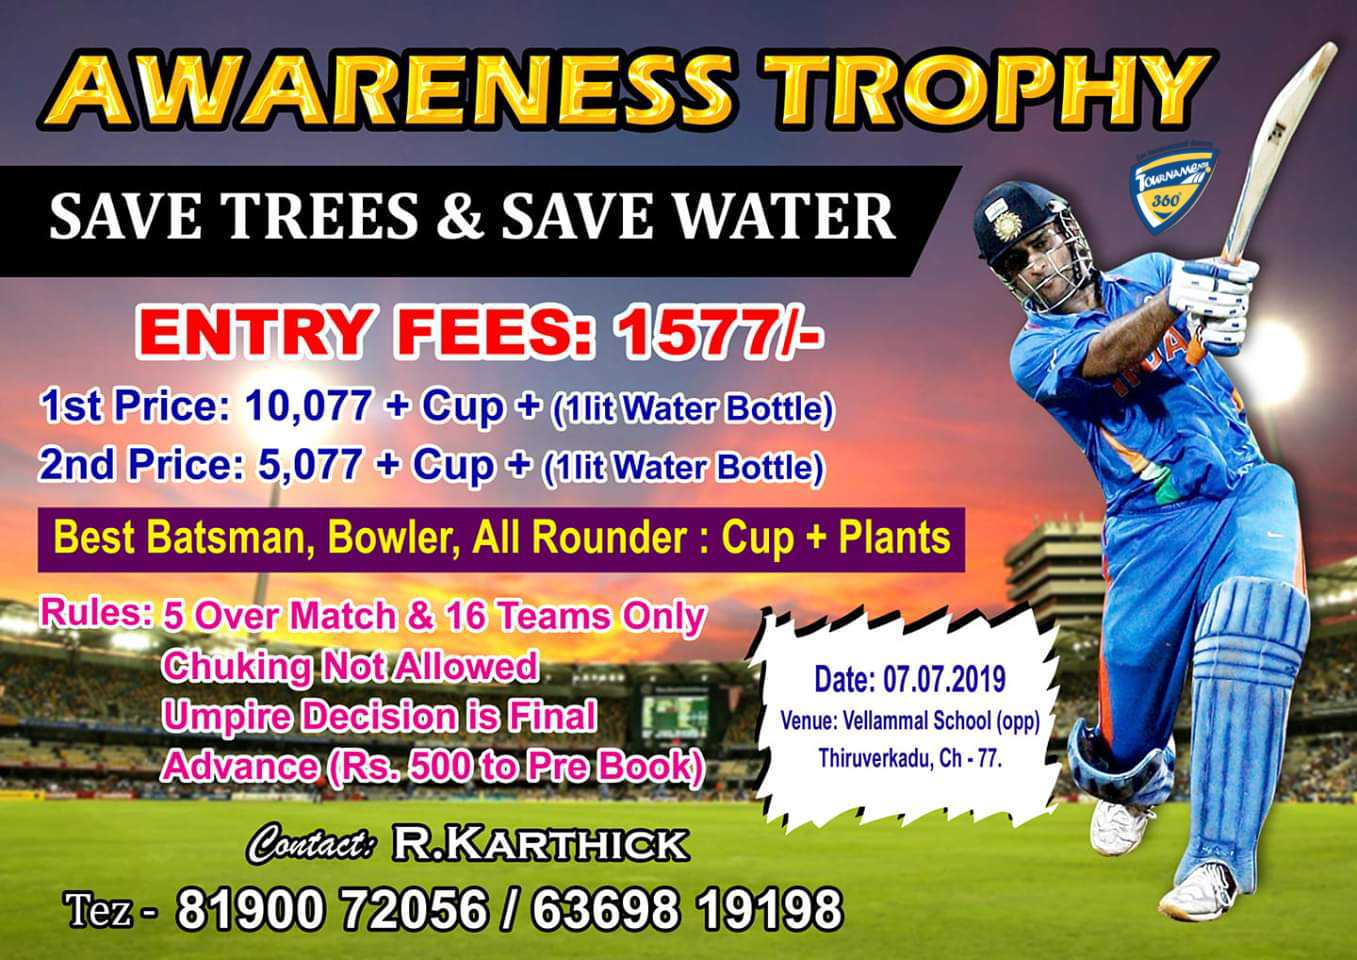 Awareness Trophy Save Trees and Save Water